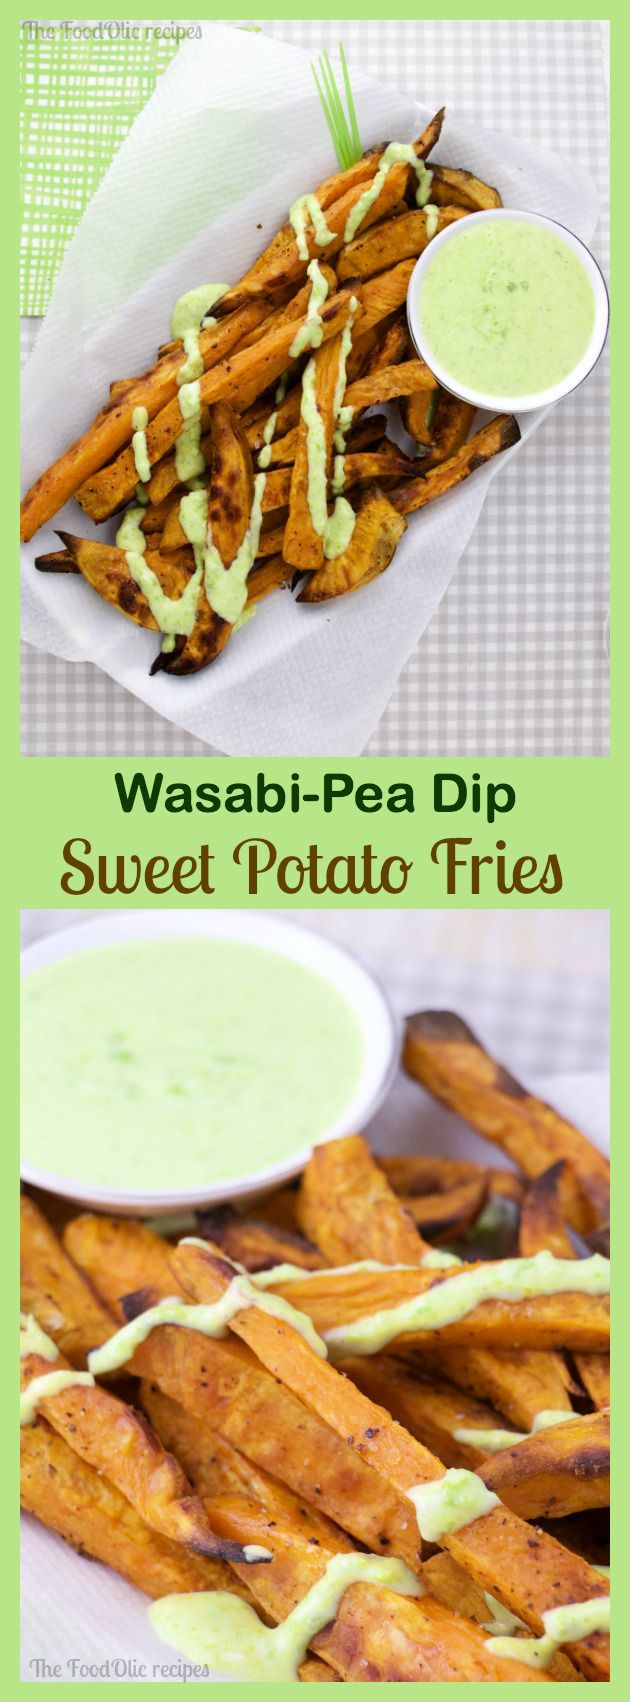 Sweet Potato Fries with a Wasabi-Pea Dip is a dynamic duo of colors and flavors. The sweetness of the fries is balanced to perfection with the spicy green wasabi-pea dip. #fries #snack #wasabi #sweetpotato